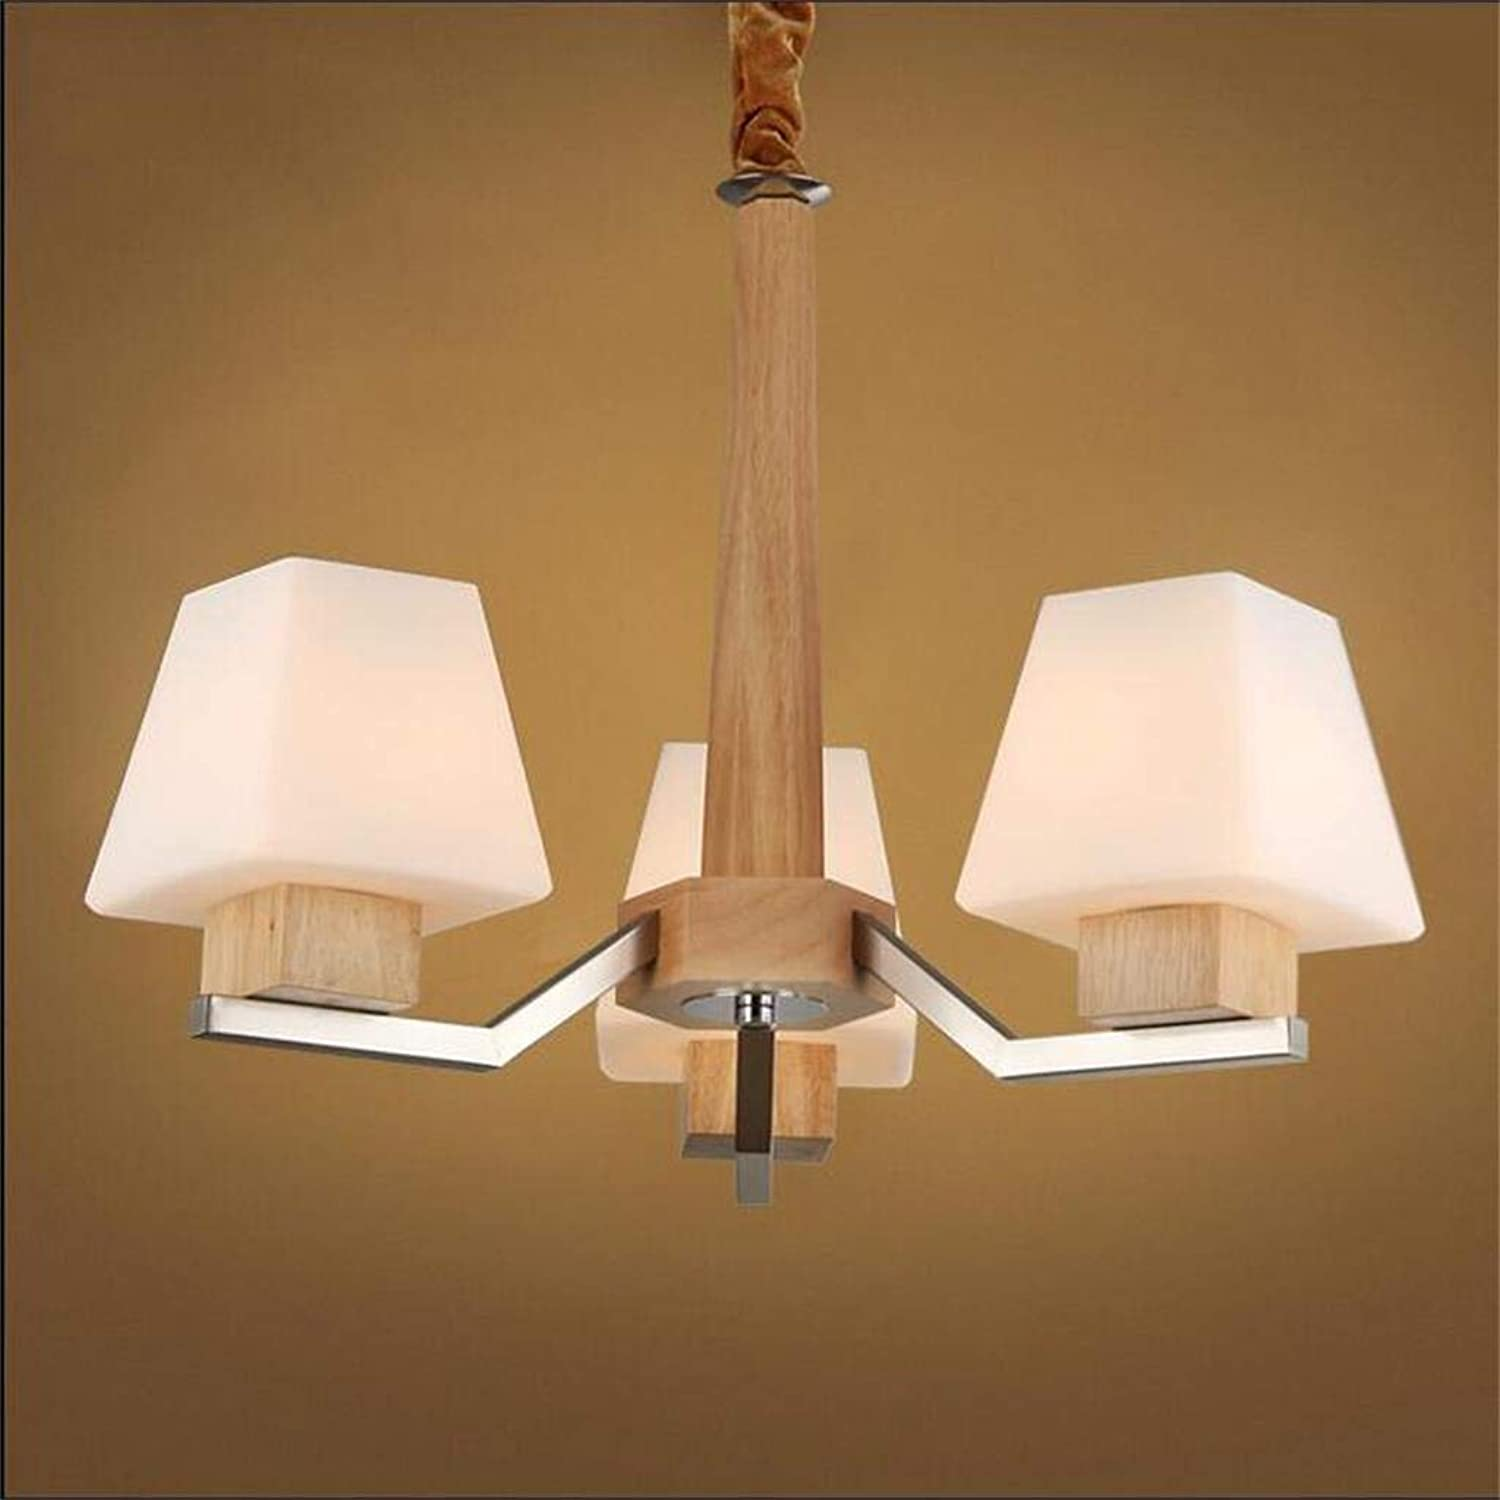 WHKHY Nordic Professional Simple Wood & Chandeliers with 3 5 Lights Living Room Bedrooms, Hotels Indoor Style  (5)